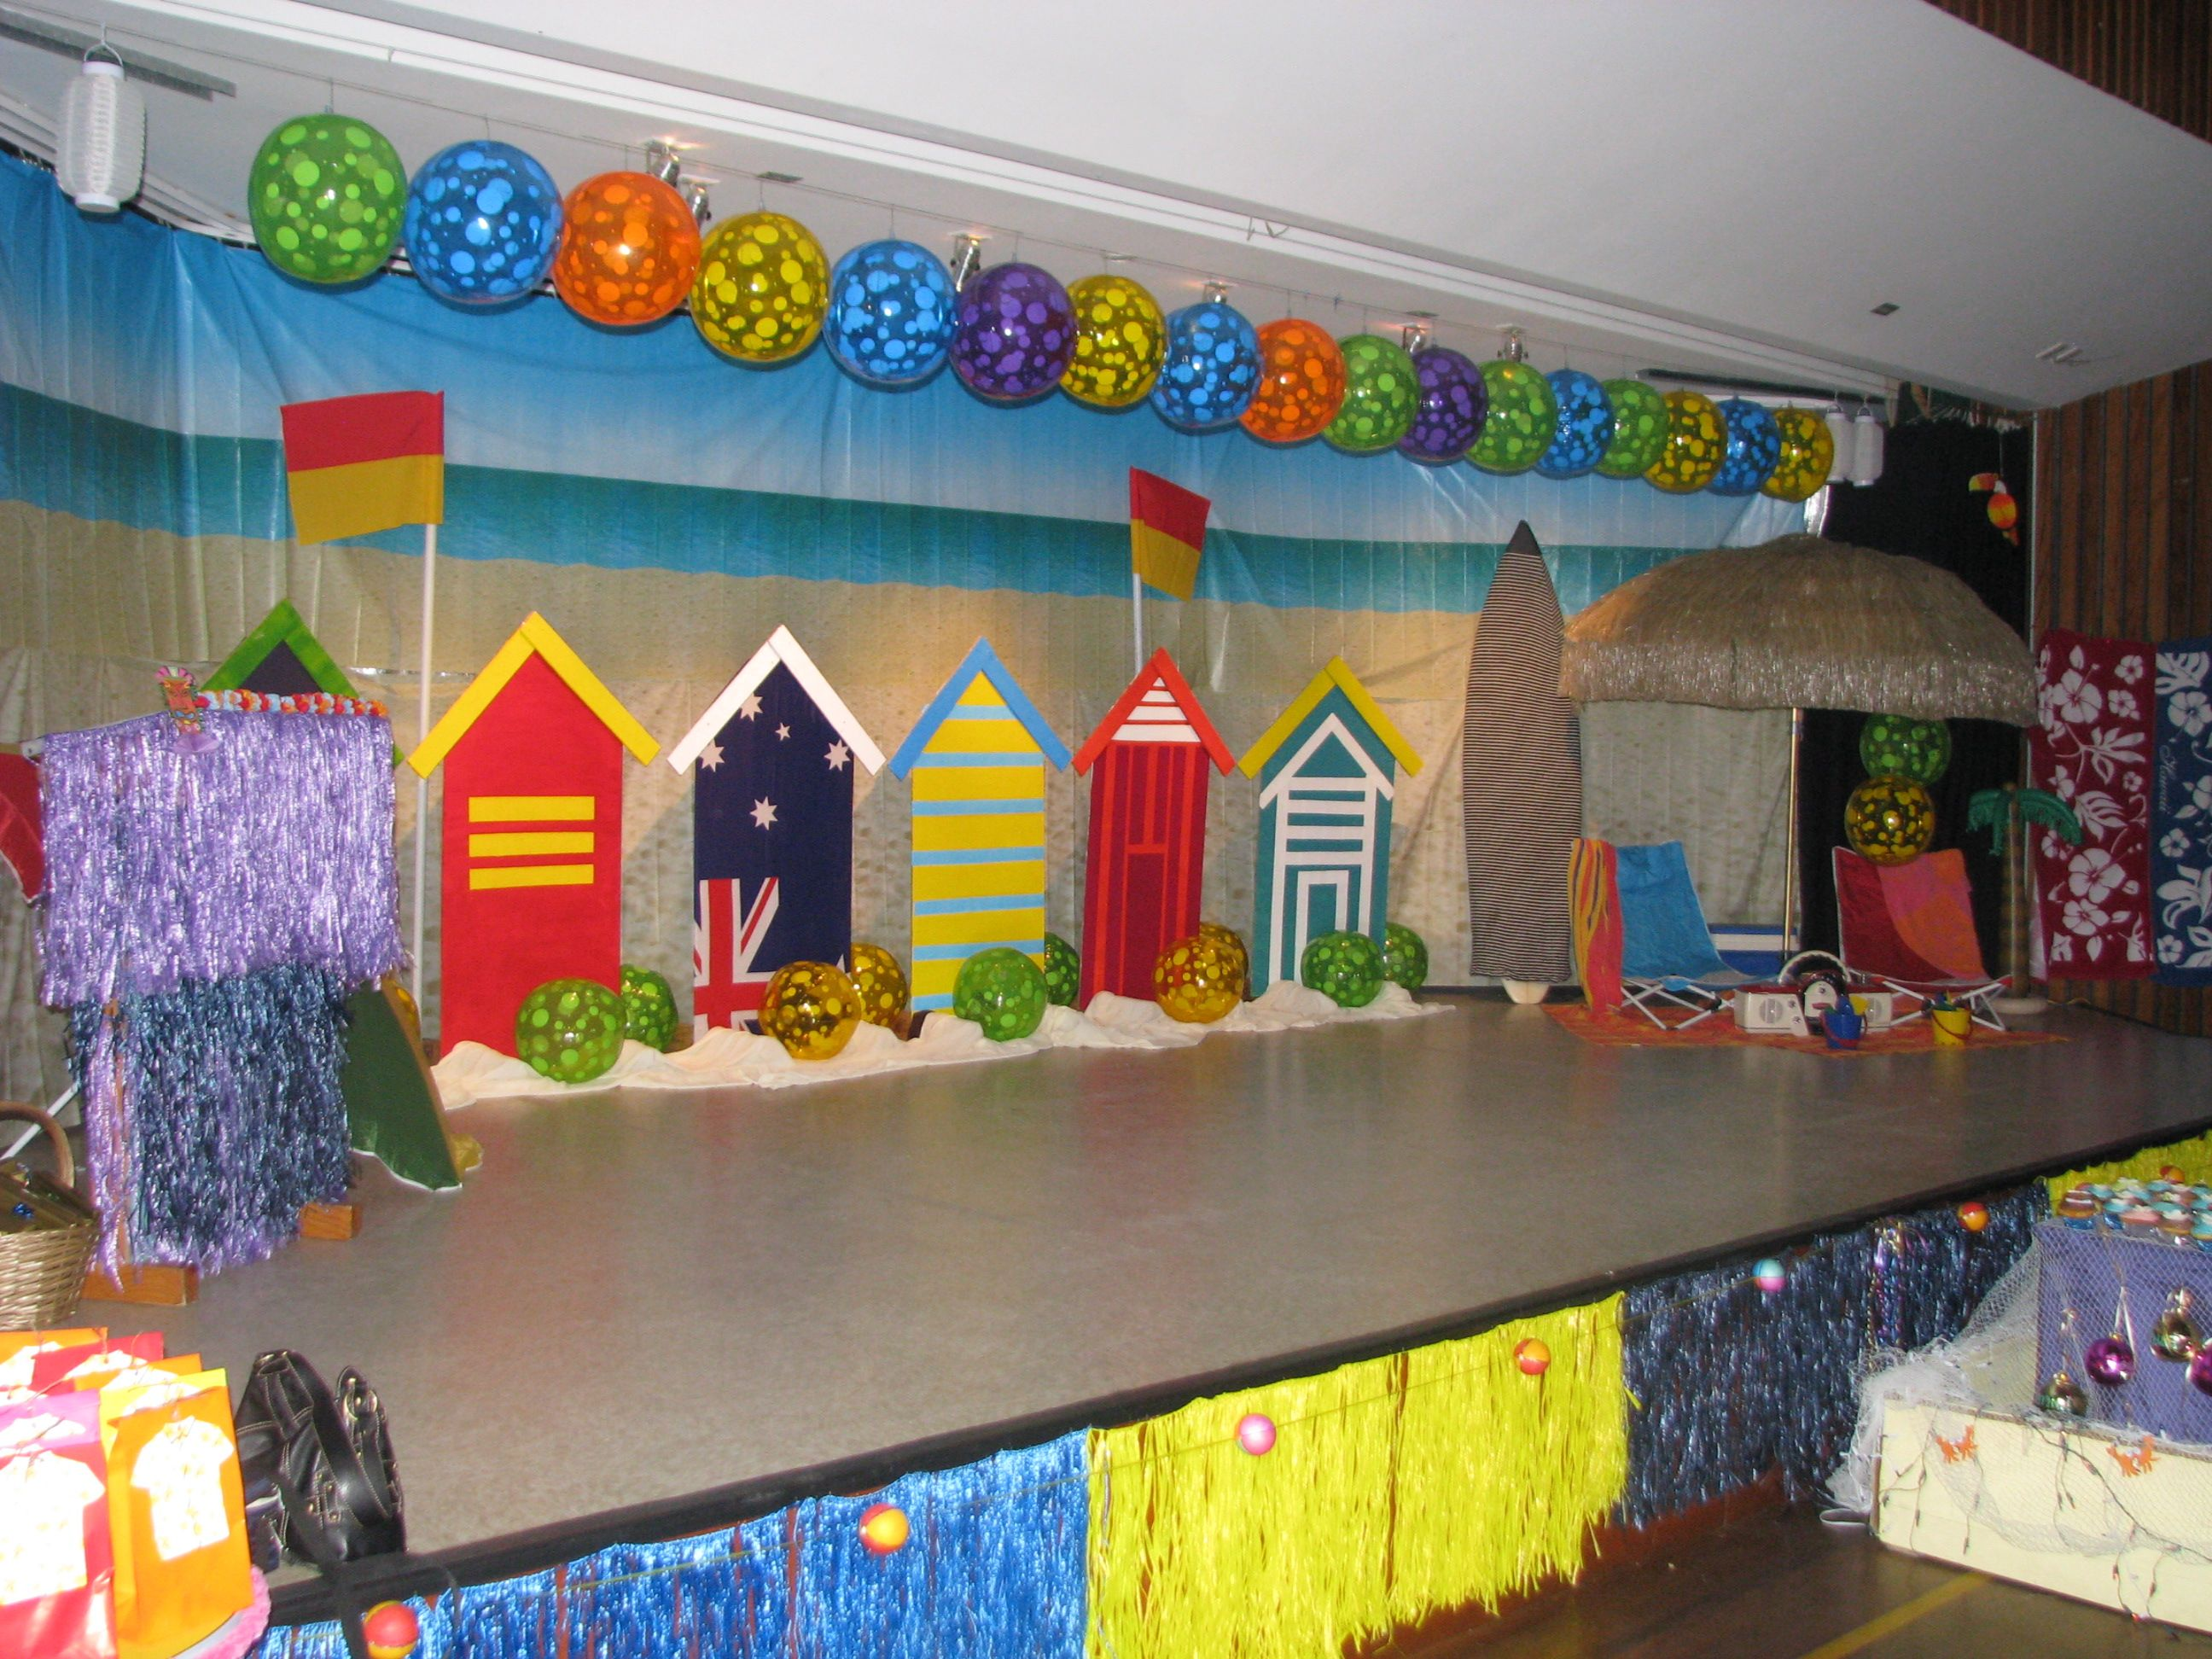 Stage Decorations For Preschool Graduation